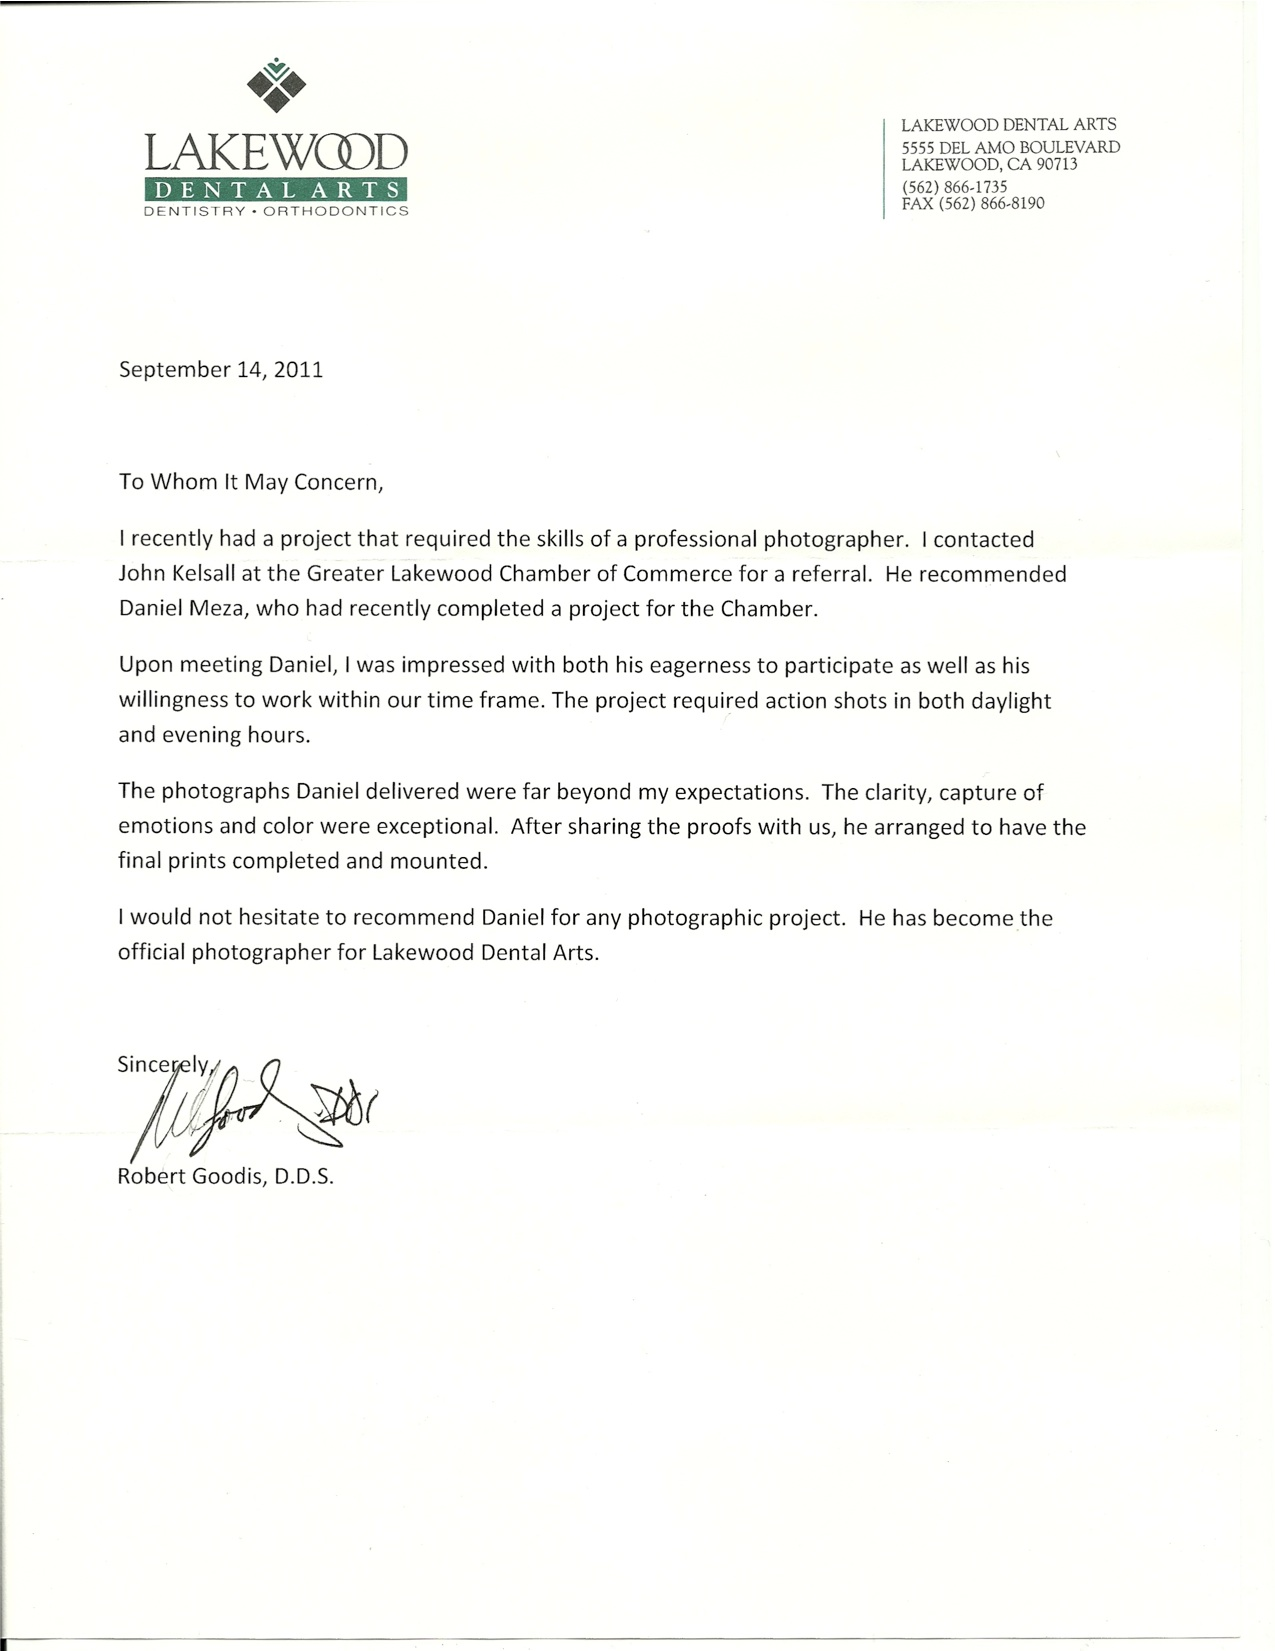 Recommendation Letter For Student Of The Month | Resume Maker ...